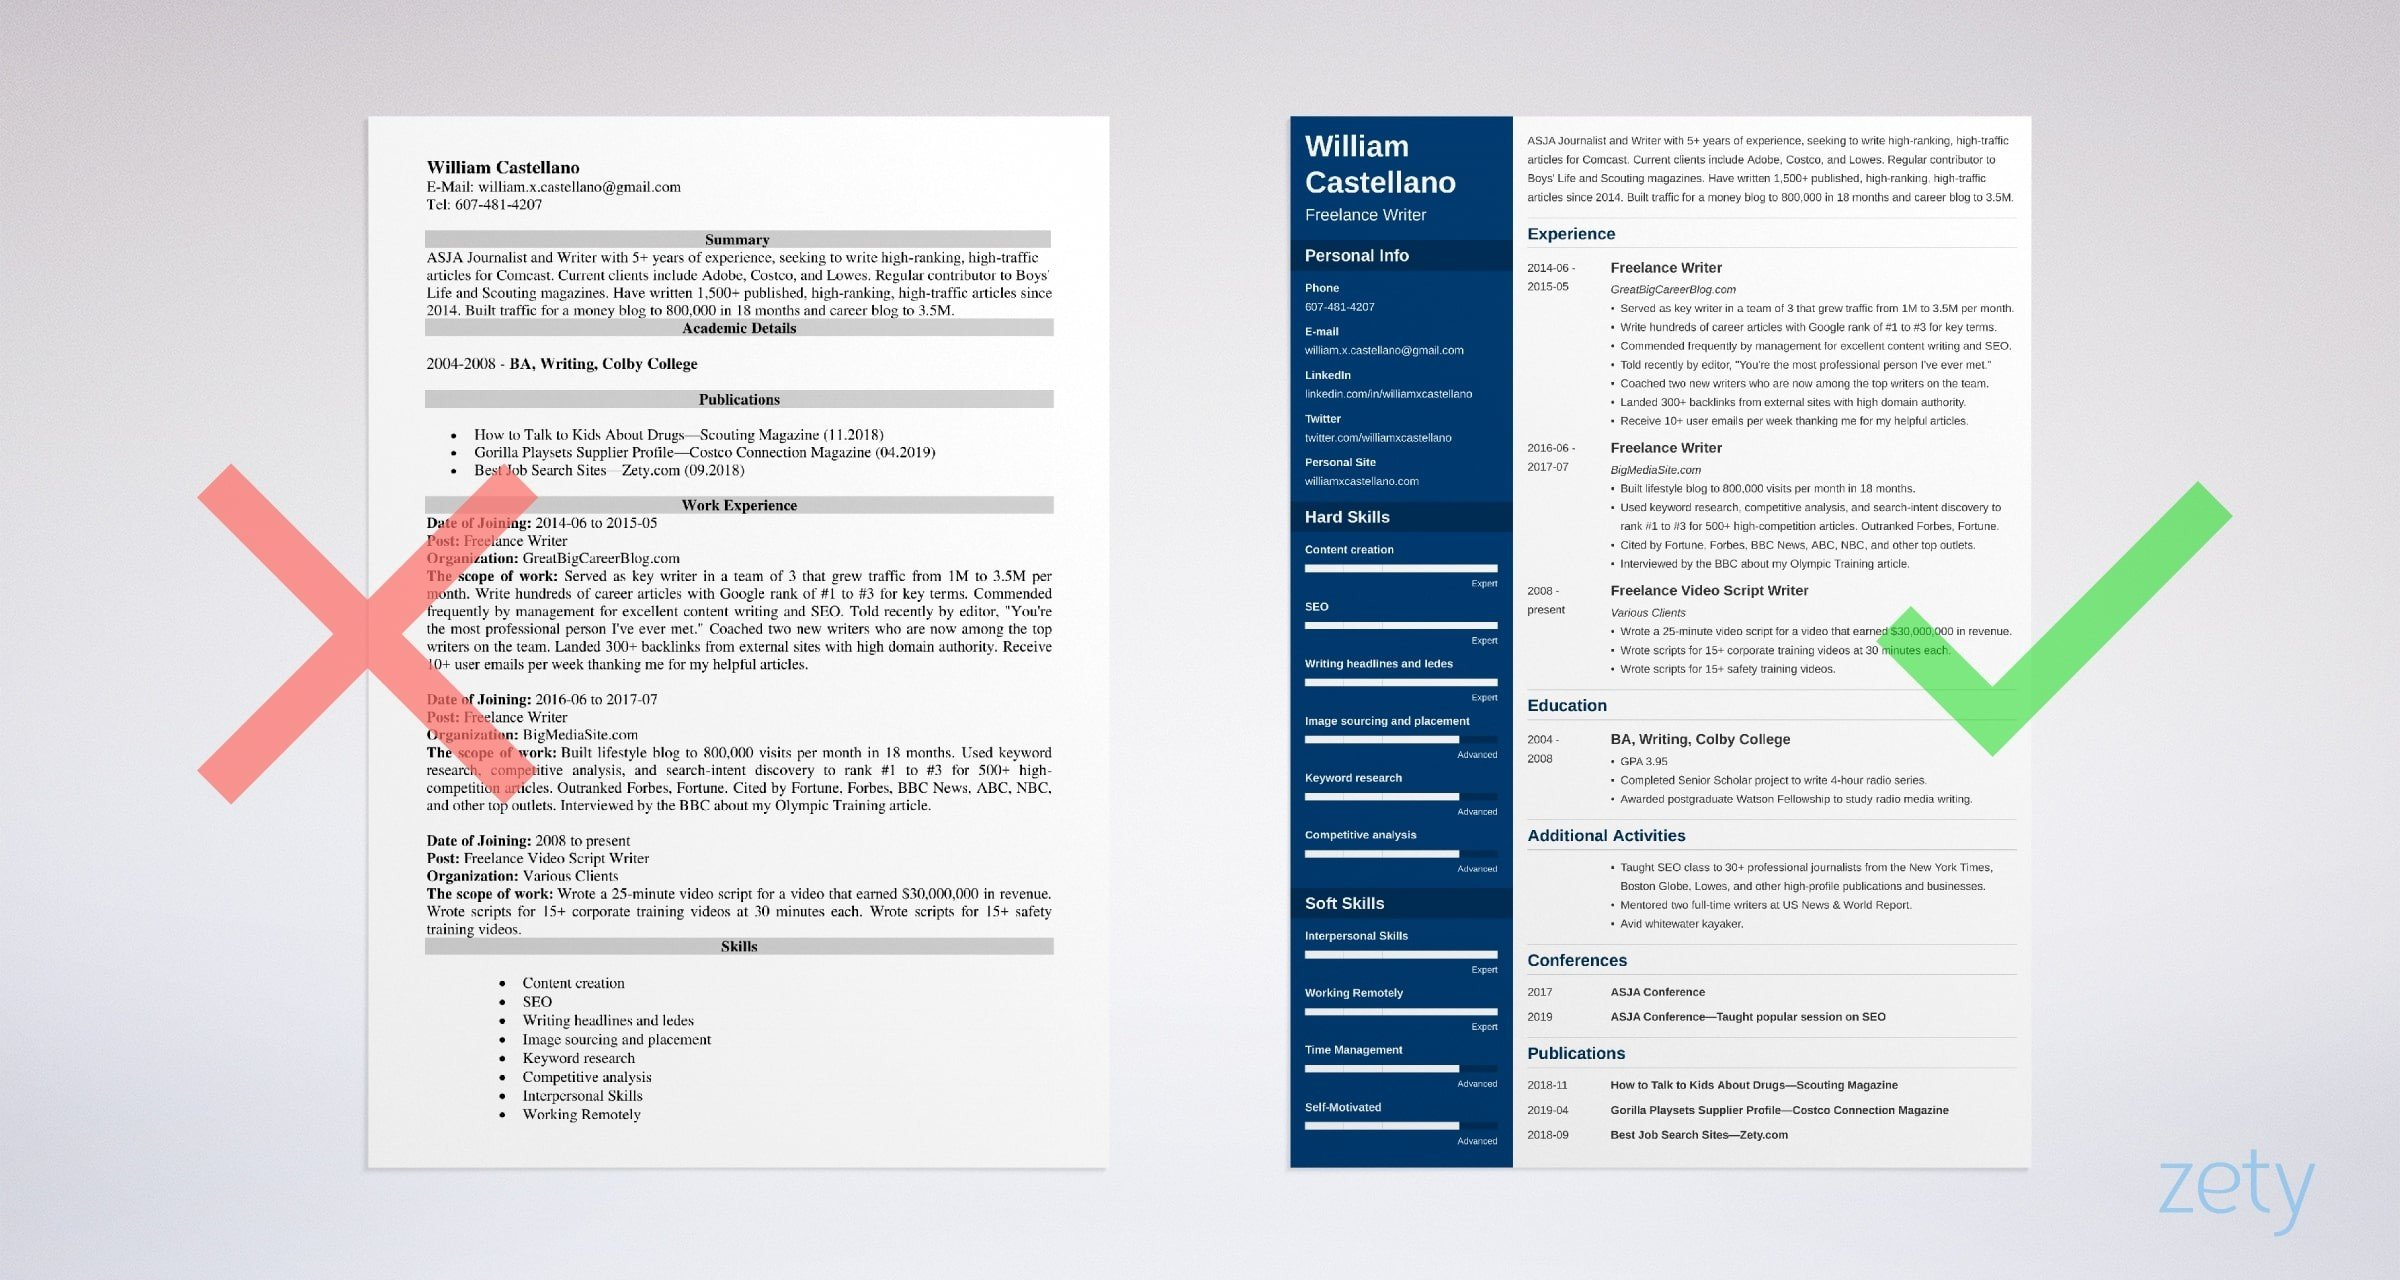 freelance work on resume freelancer examples experience first year nurse different styles Resume Freelance Work Experience Resume